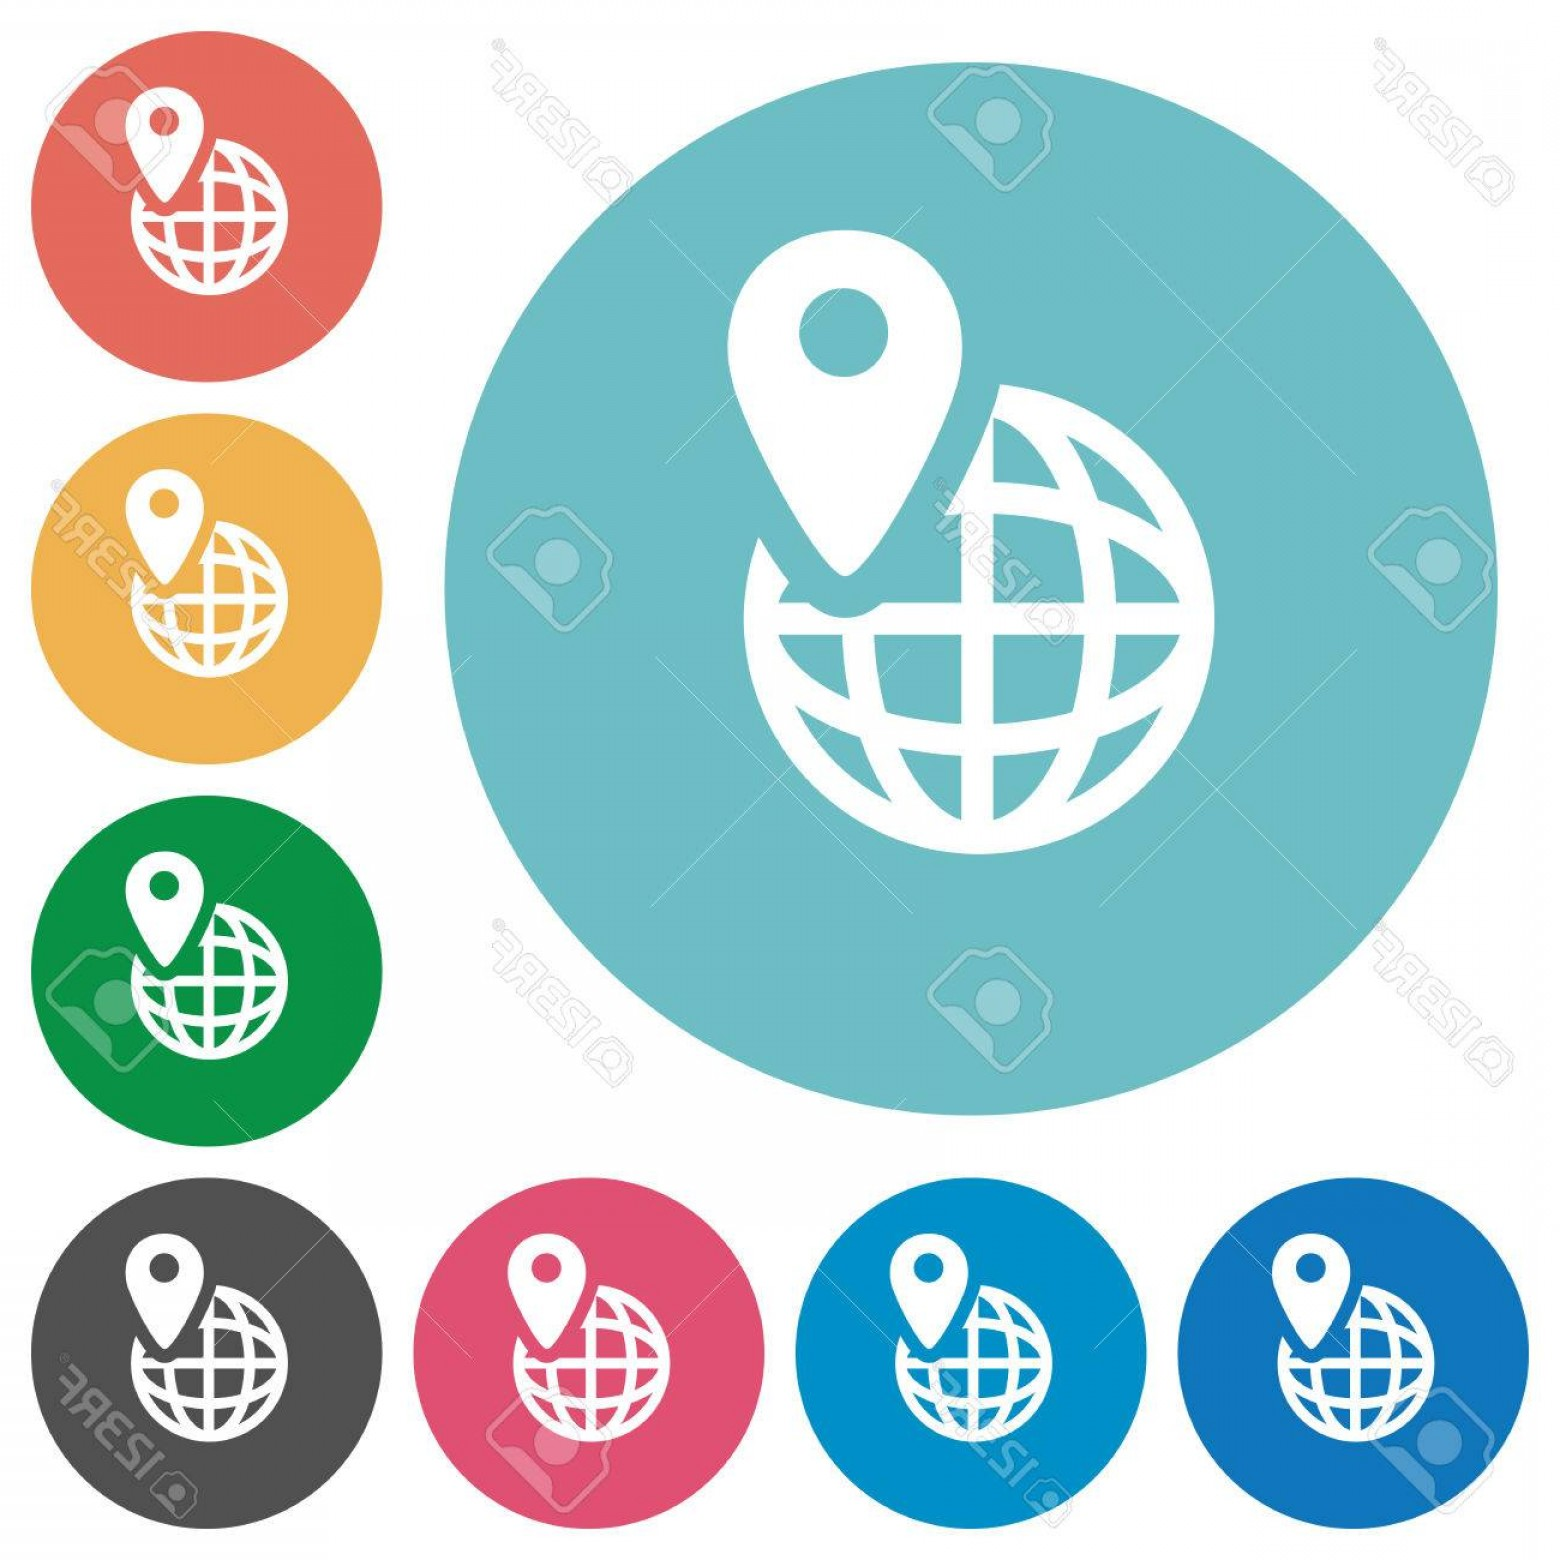 1560x1560 Photostock Vector Gps Location White Flat Icons On Color Rounded